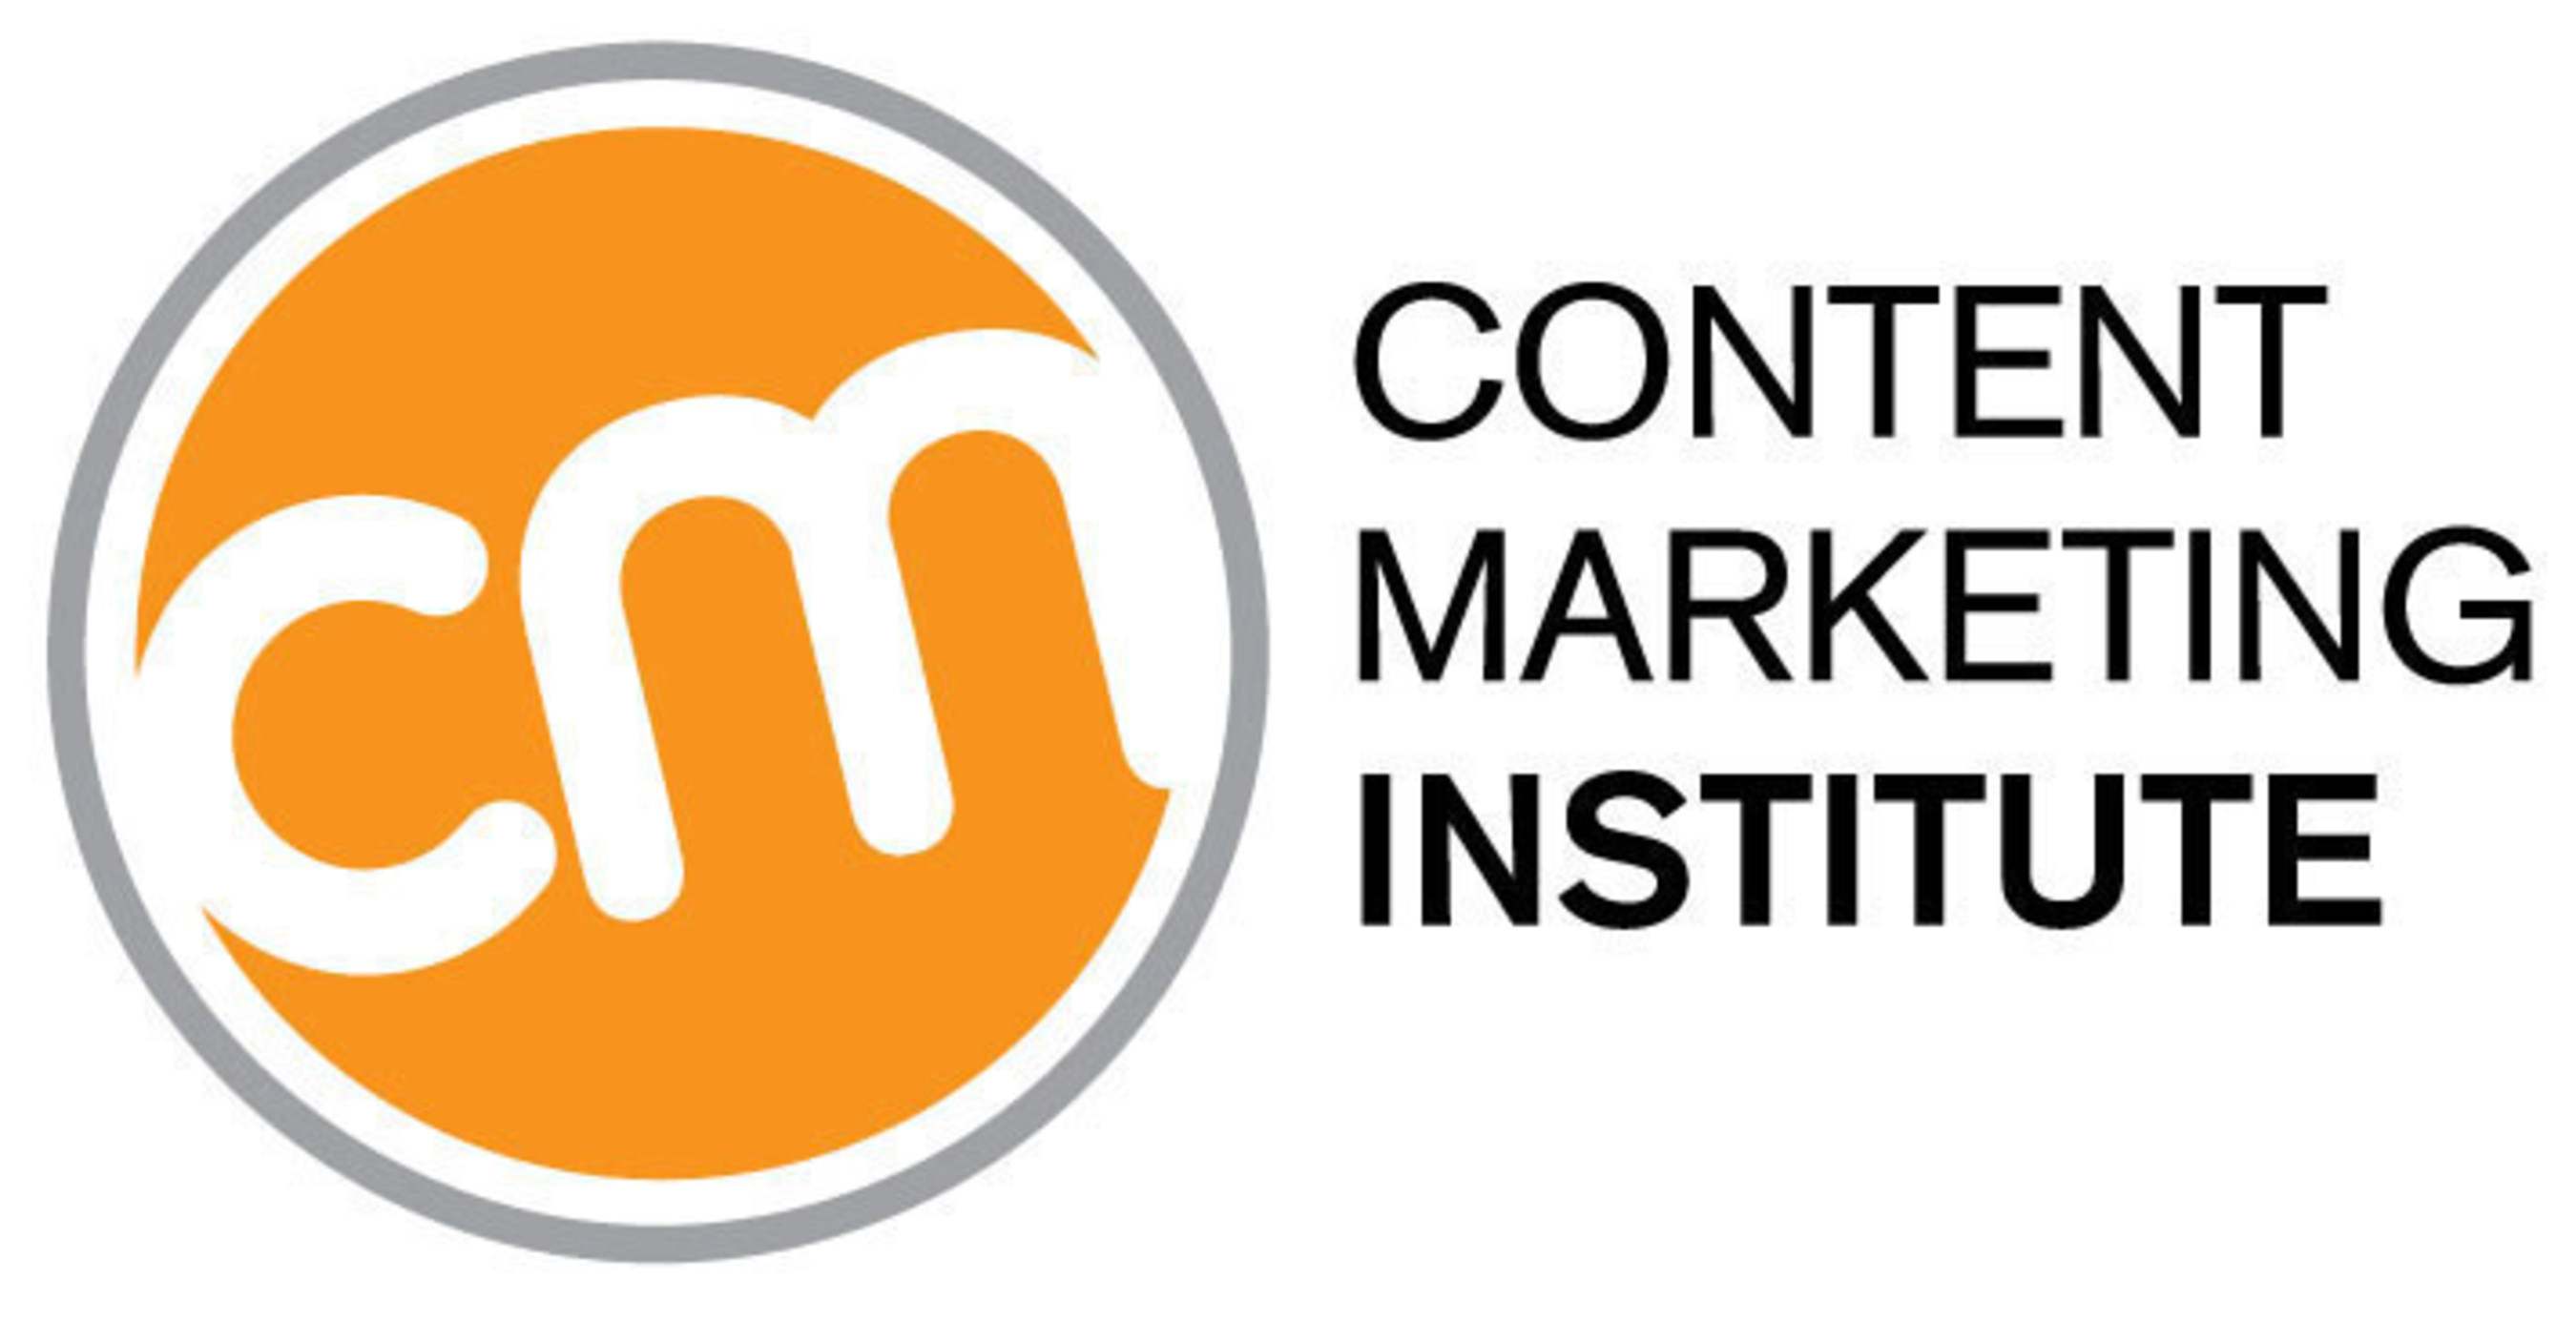 Content Marketing Institute Named to Inc. 5000 Fastest Growing Companies